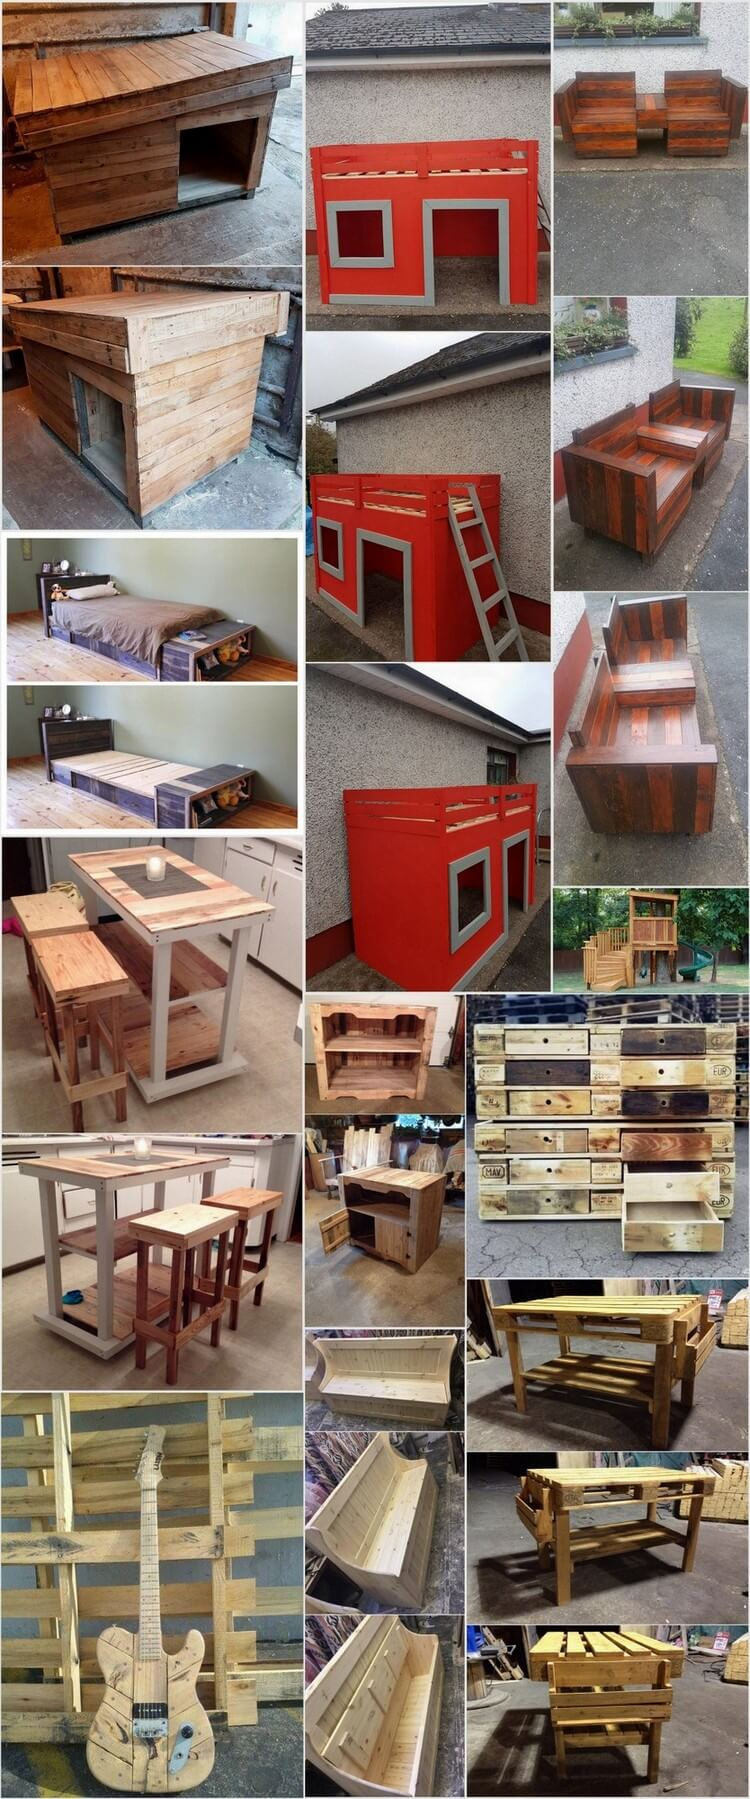 Splendid Ideas With Used Shipping Pallets Pallet Wood Projects